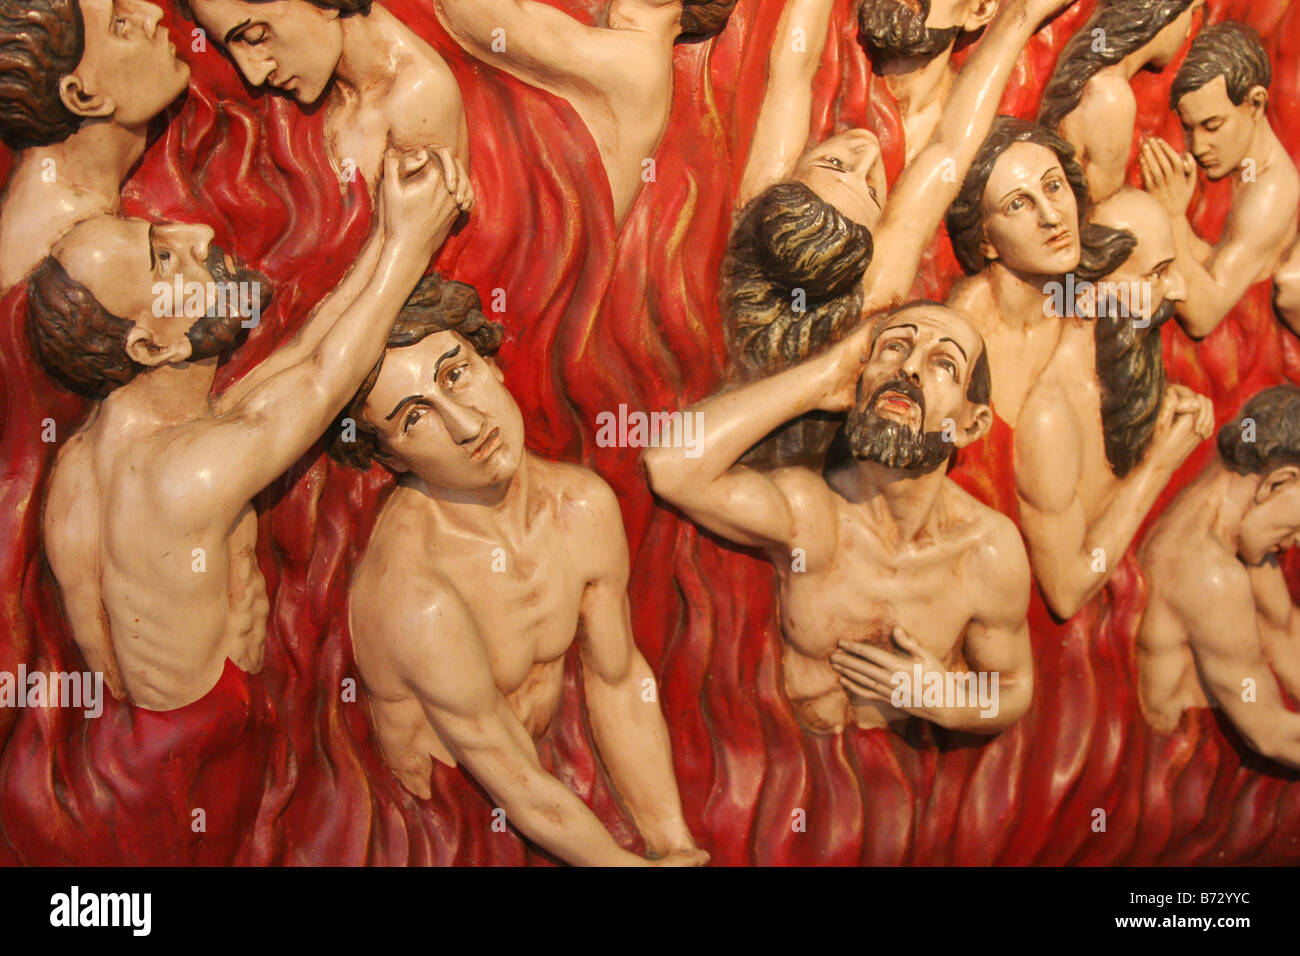 People burning in hell. - Stock Image